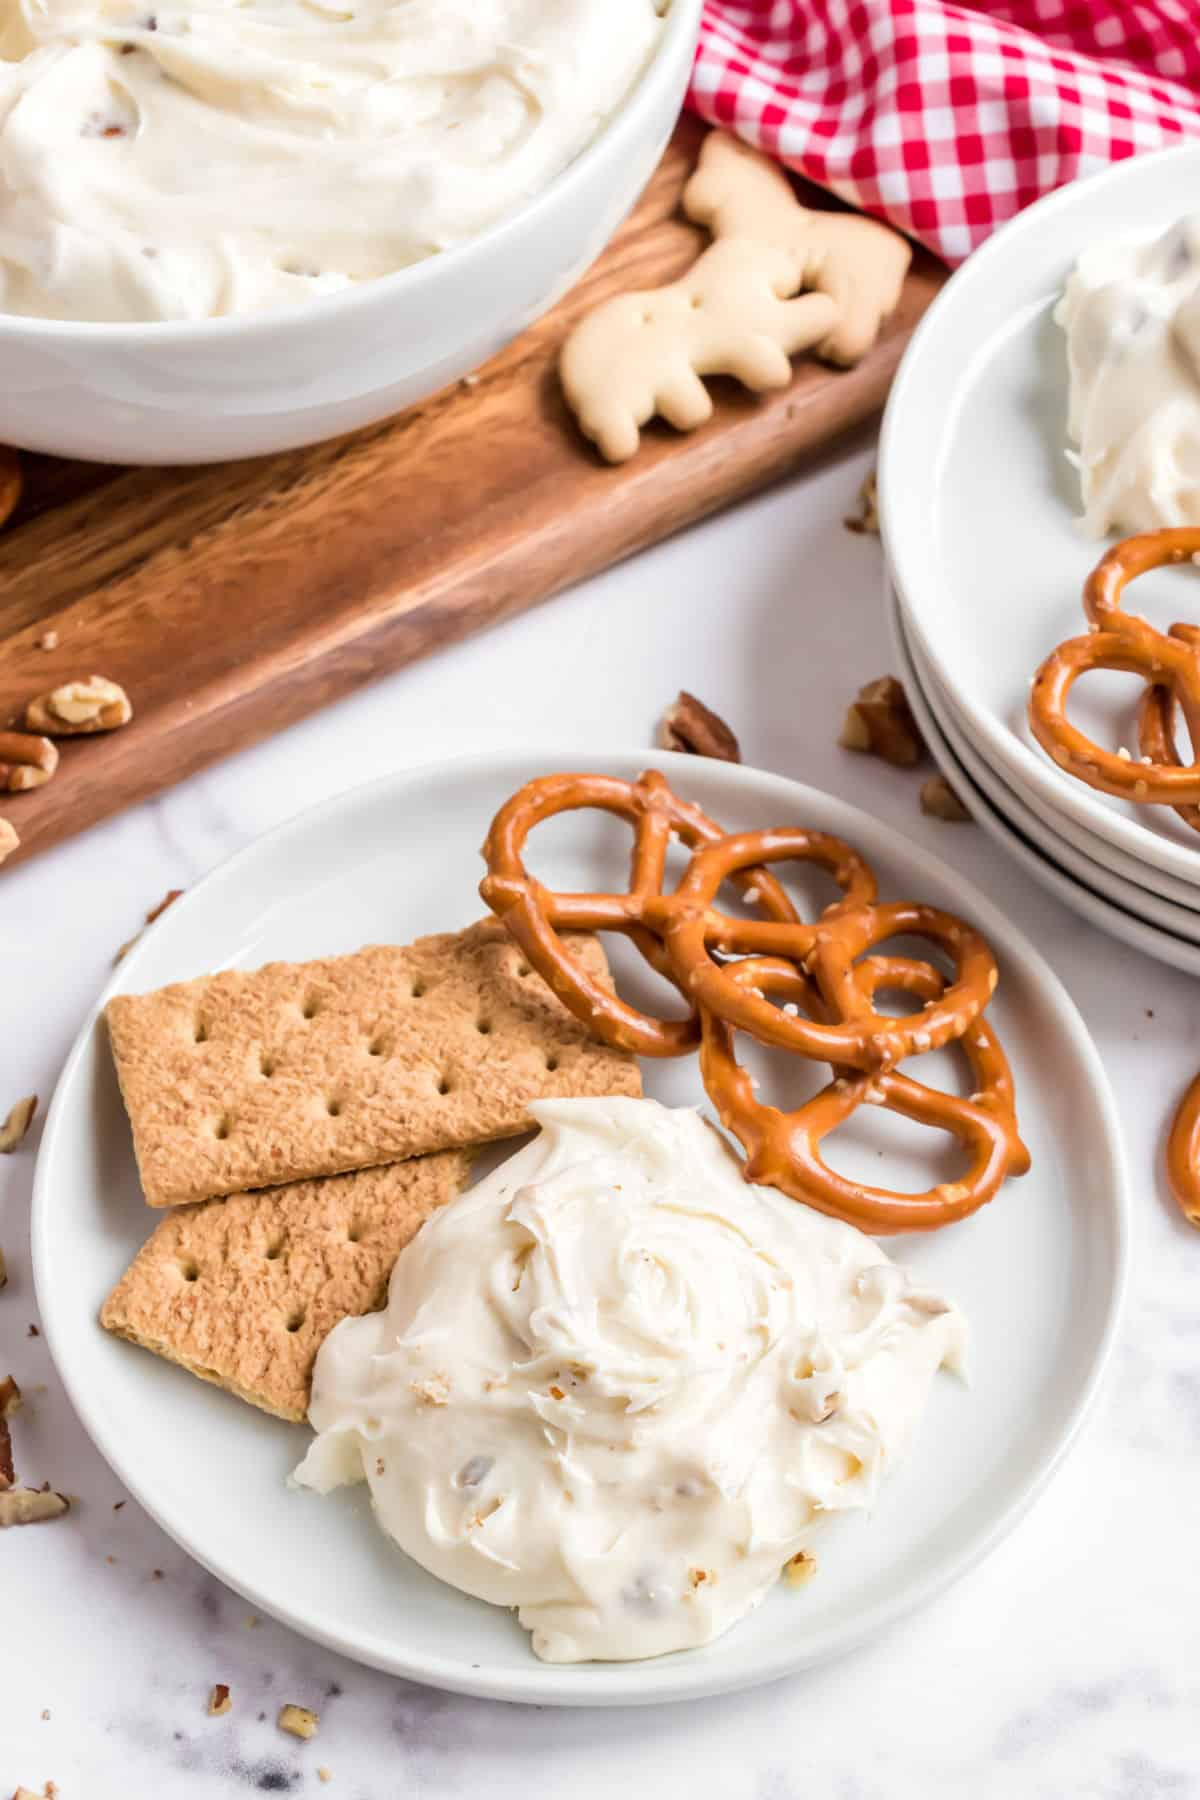 Cheesecake dip scooped onto a white plate with graham crackers and pretzels.